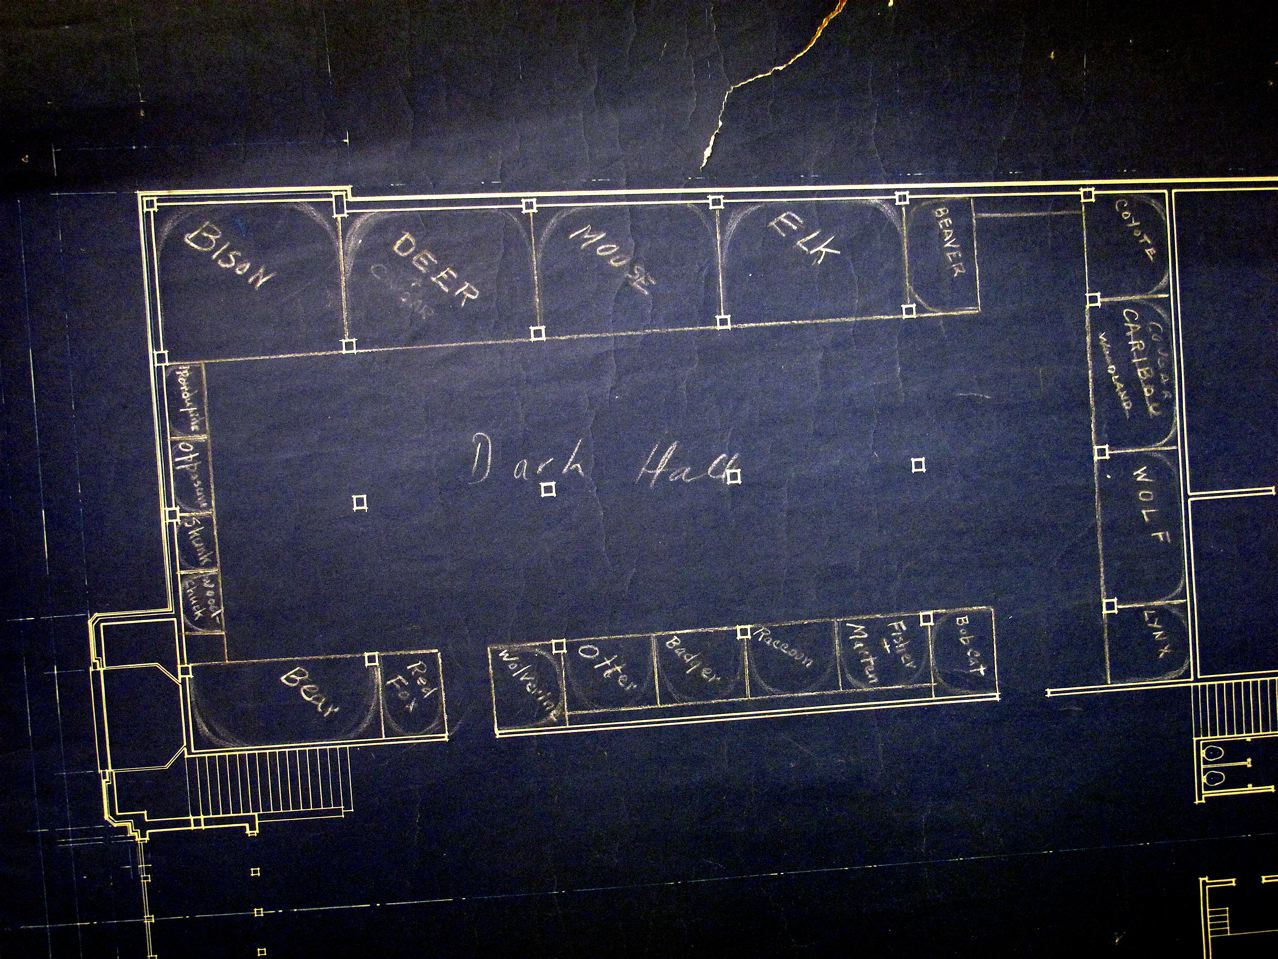 Blueprints process by alois kronschlaeger grand rapids public museum blueprint 01 malvernweather Images